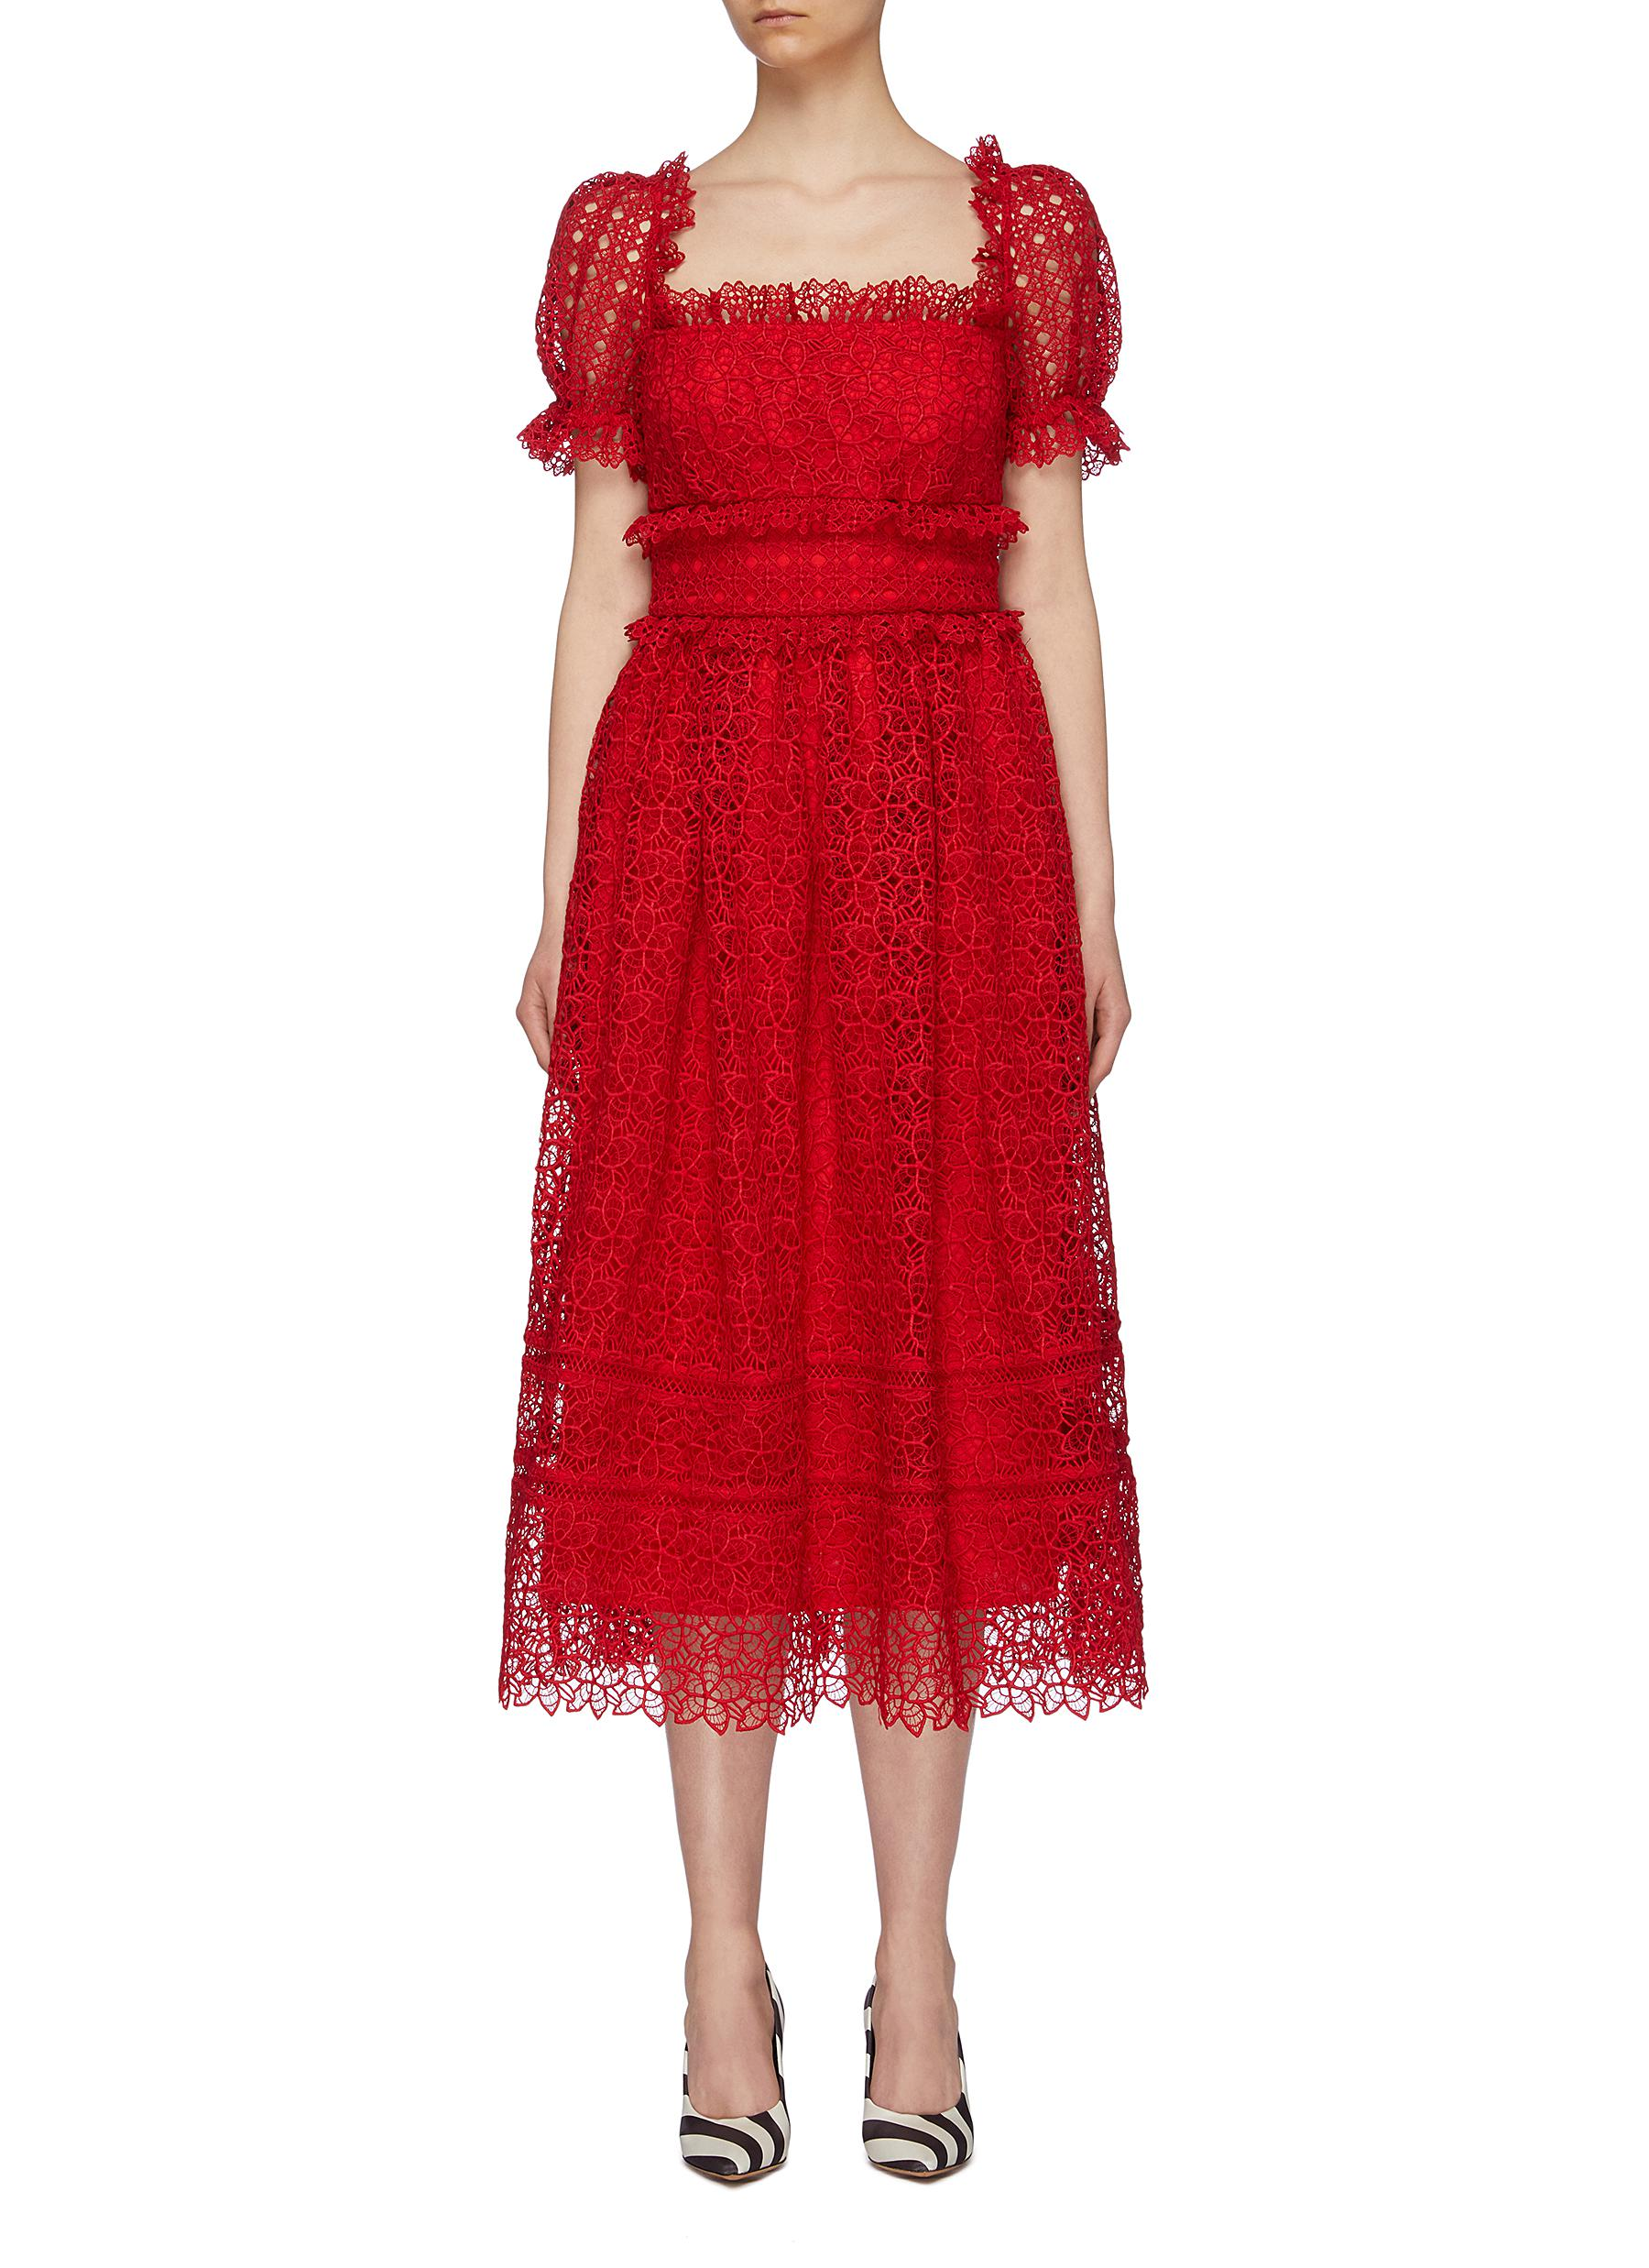 Puff sleeve ruffle trim flared guipure lace midi dress by Self-Portrait